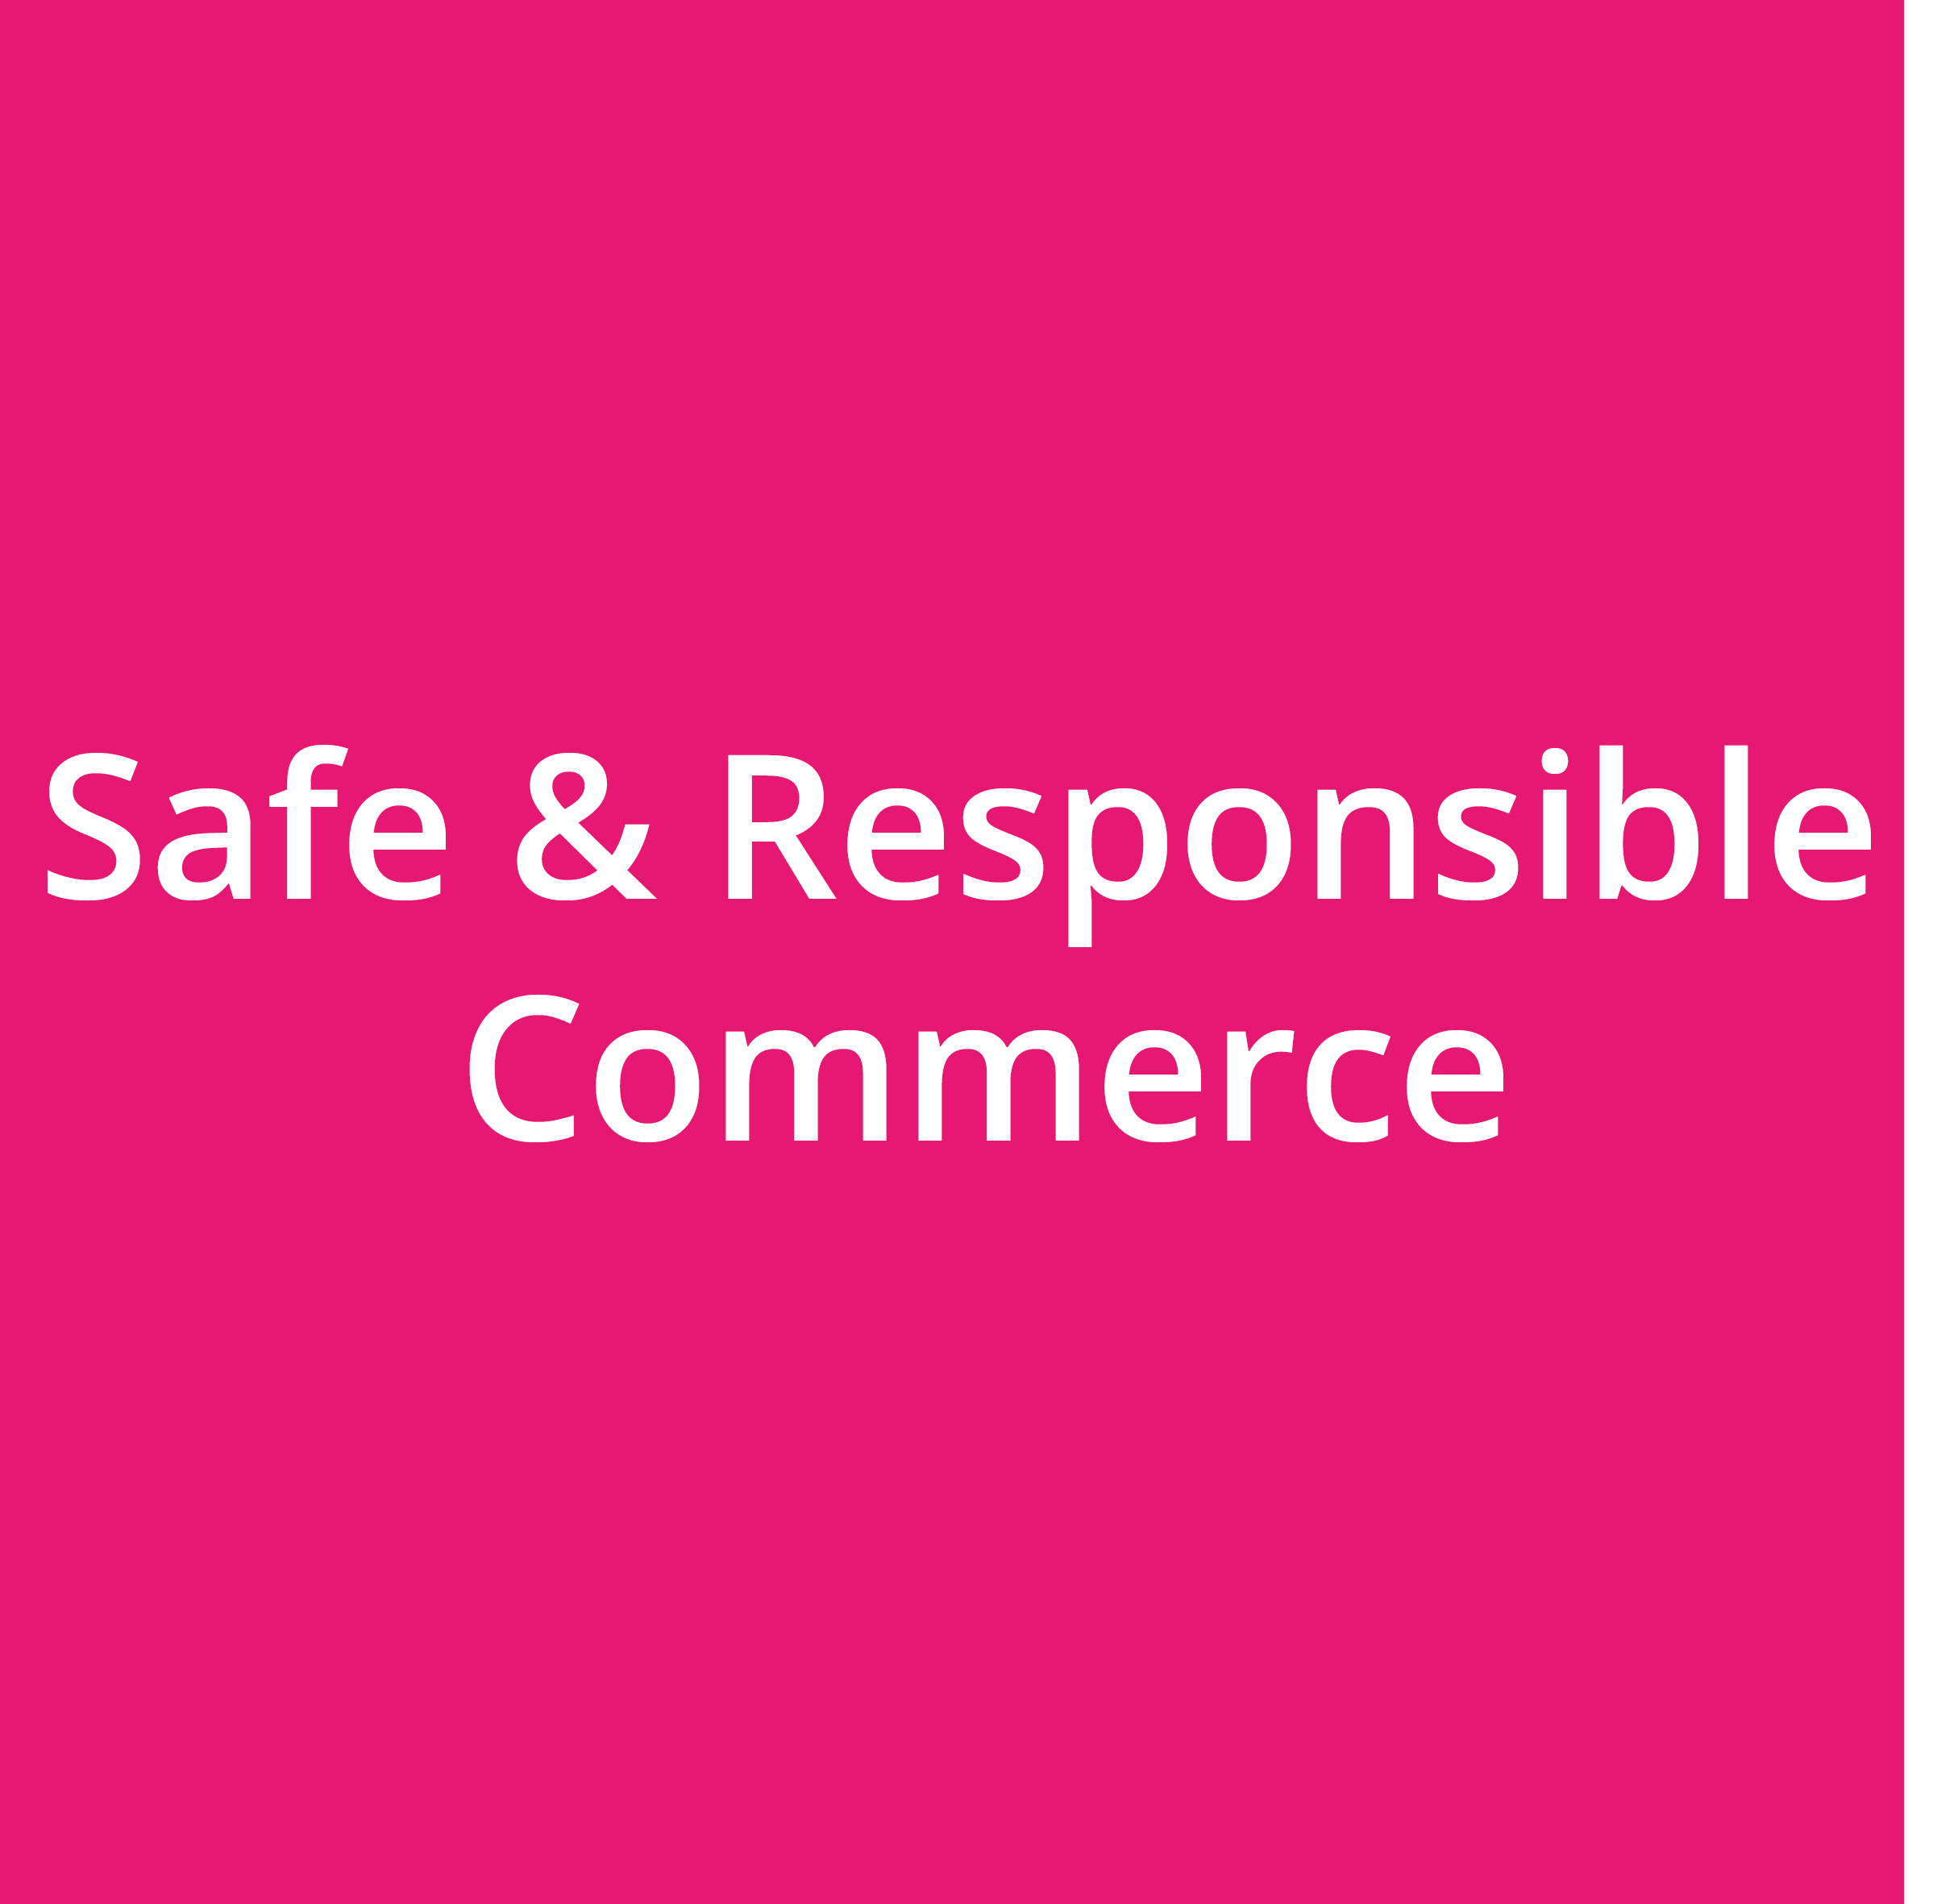 Safe & Responsible Commerce